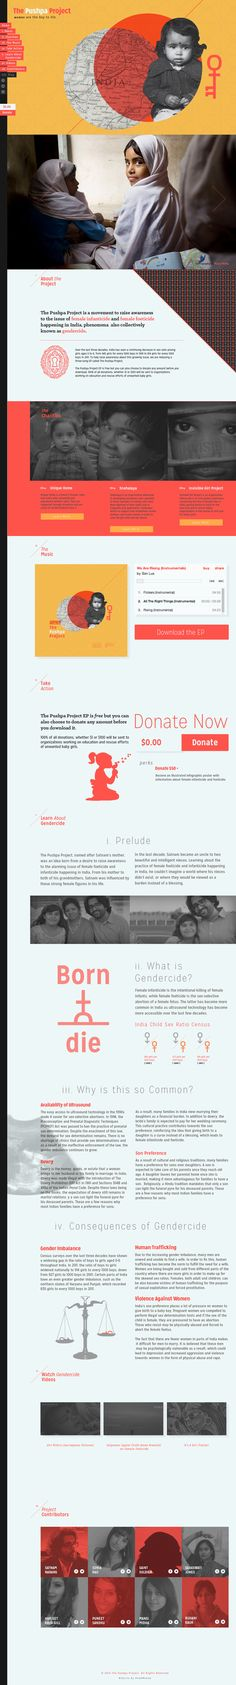 Pushpa Project Website — Designspiration